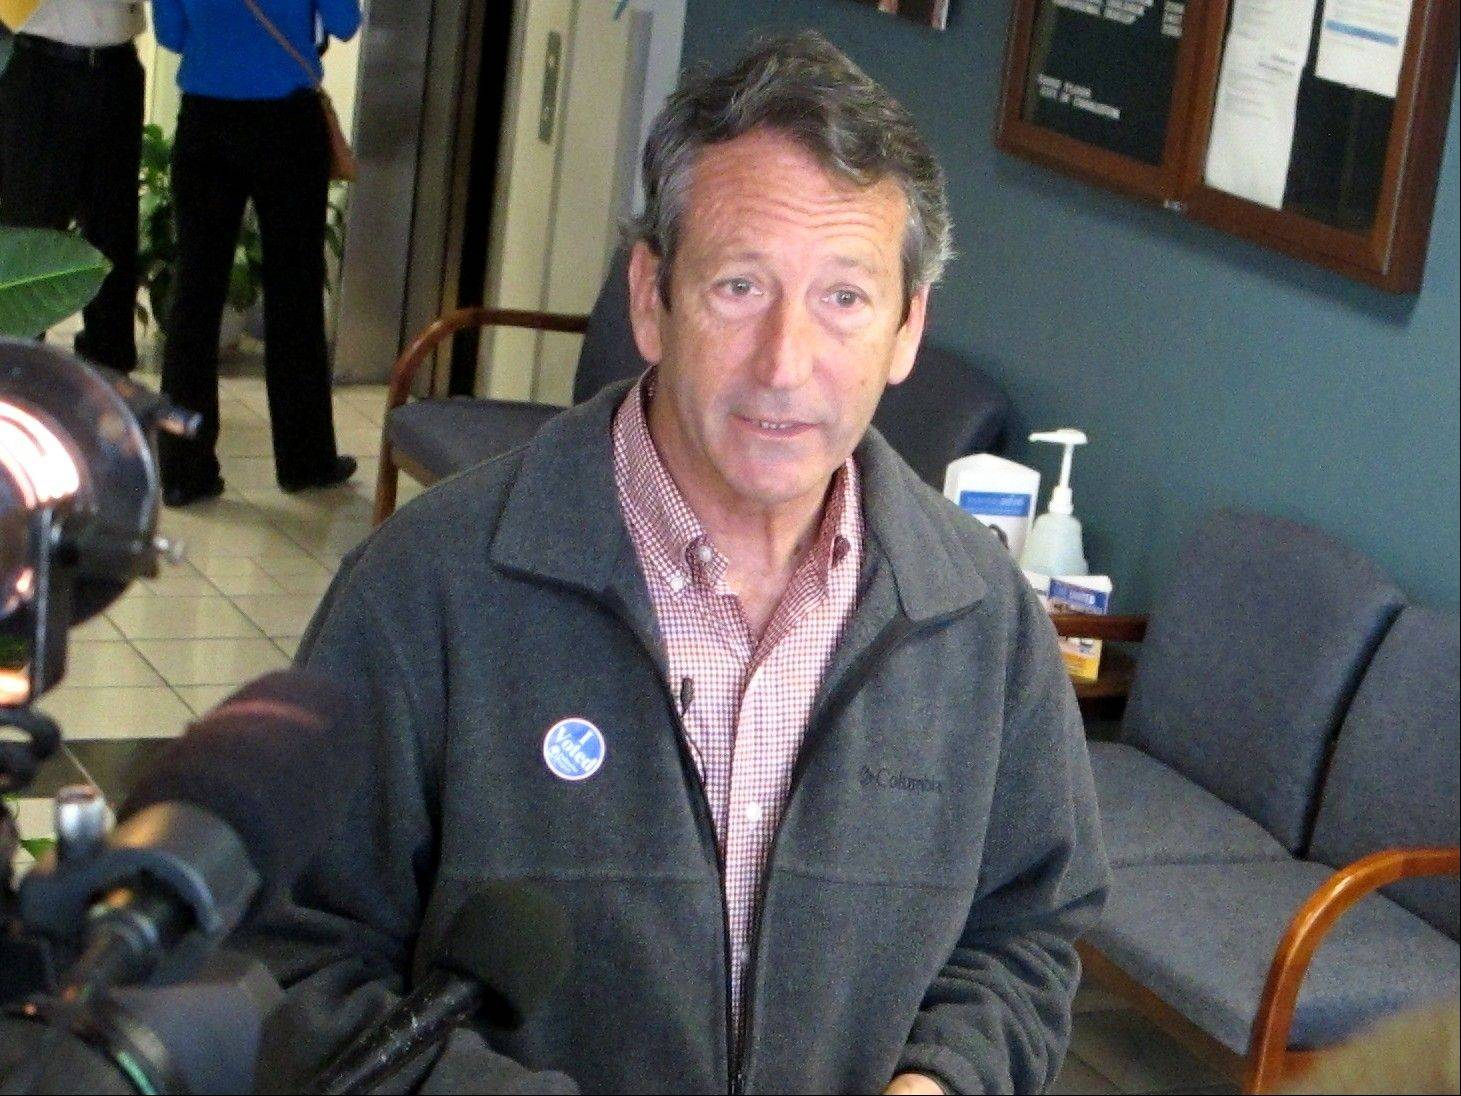 Former South Carolina Gov. Mark Sanford advanced Tuesday night to an April 2 GOP runoff for an open congressional seat in South Carolina's vacant 1st District.